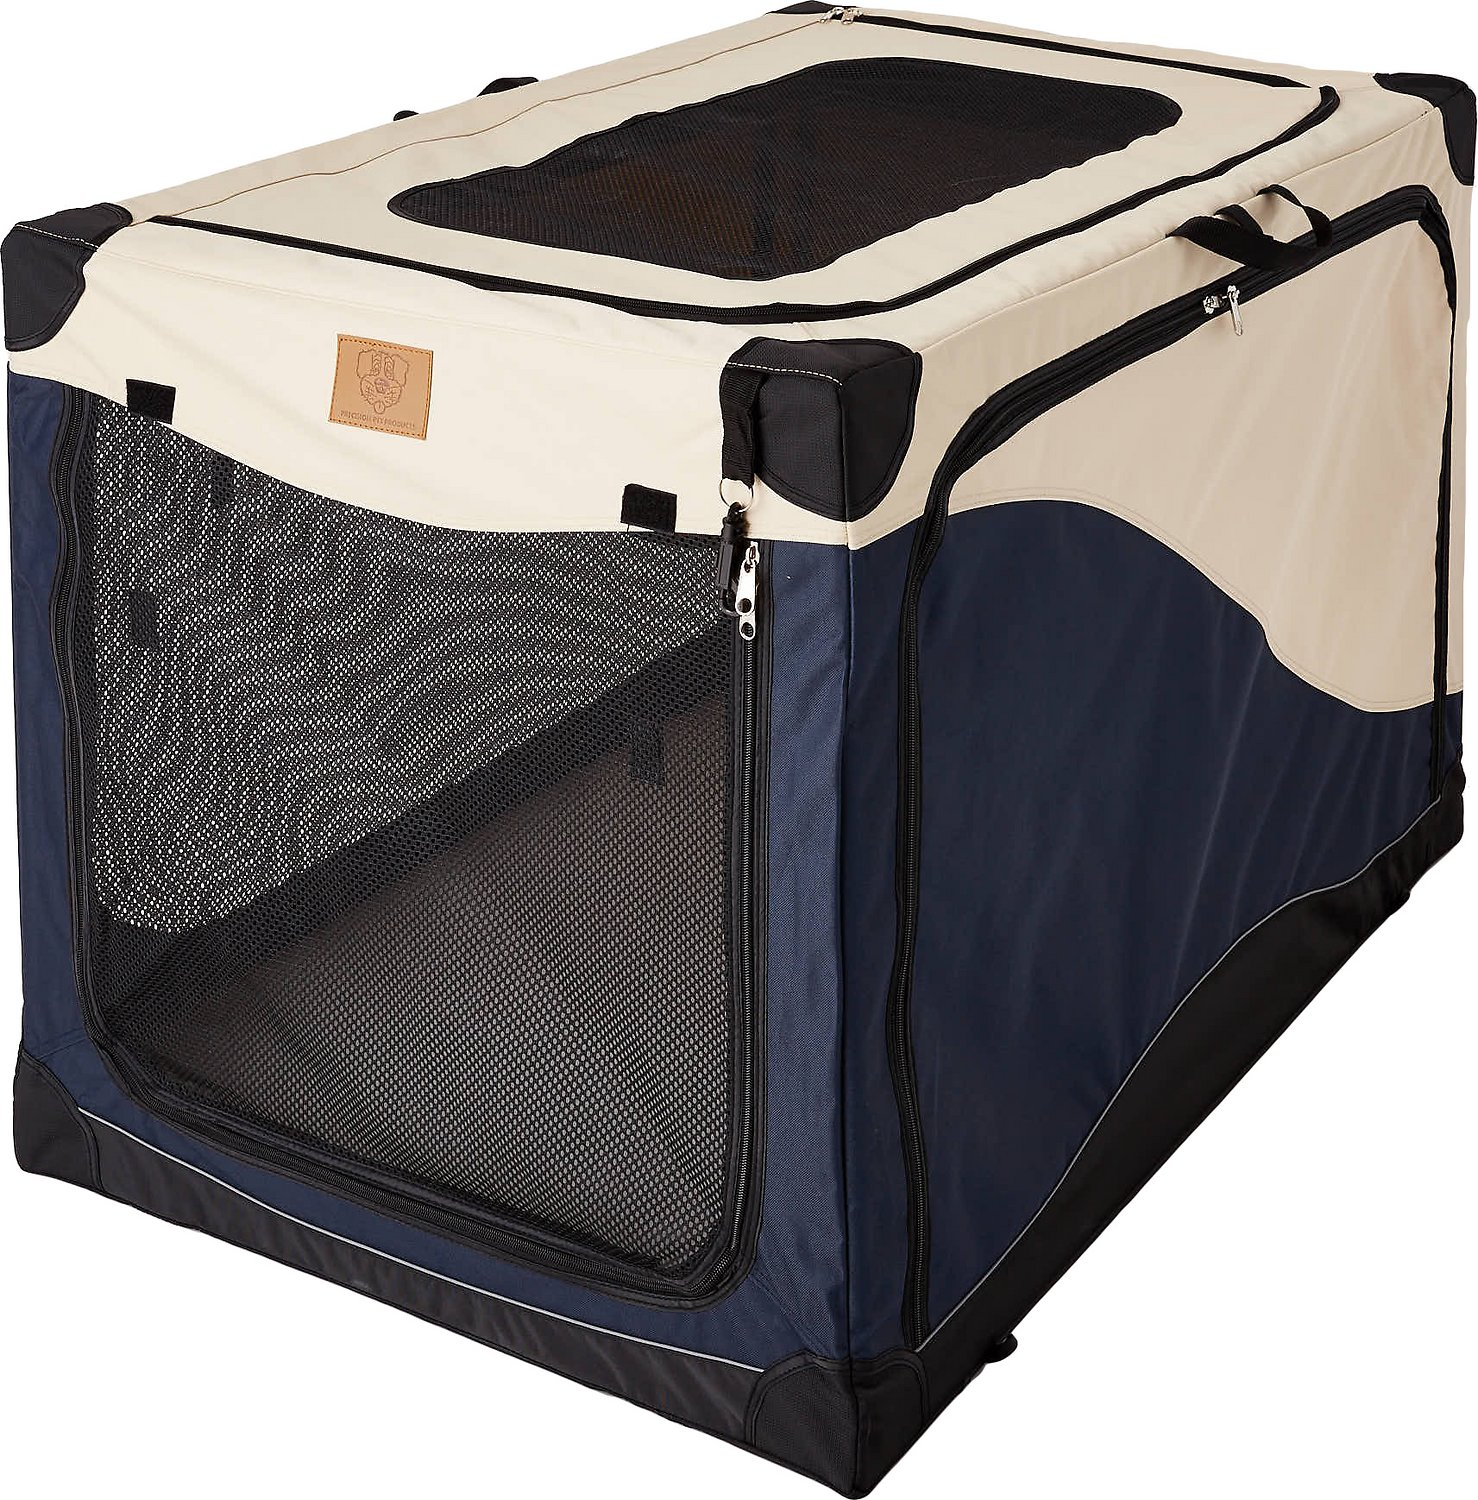 Precision Pet Soft Sided Crate Image